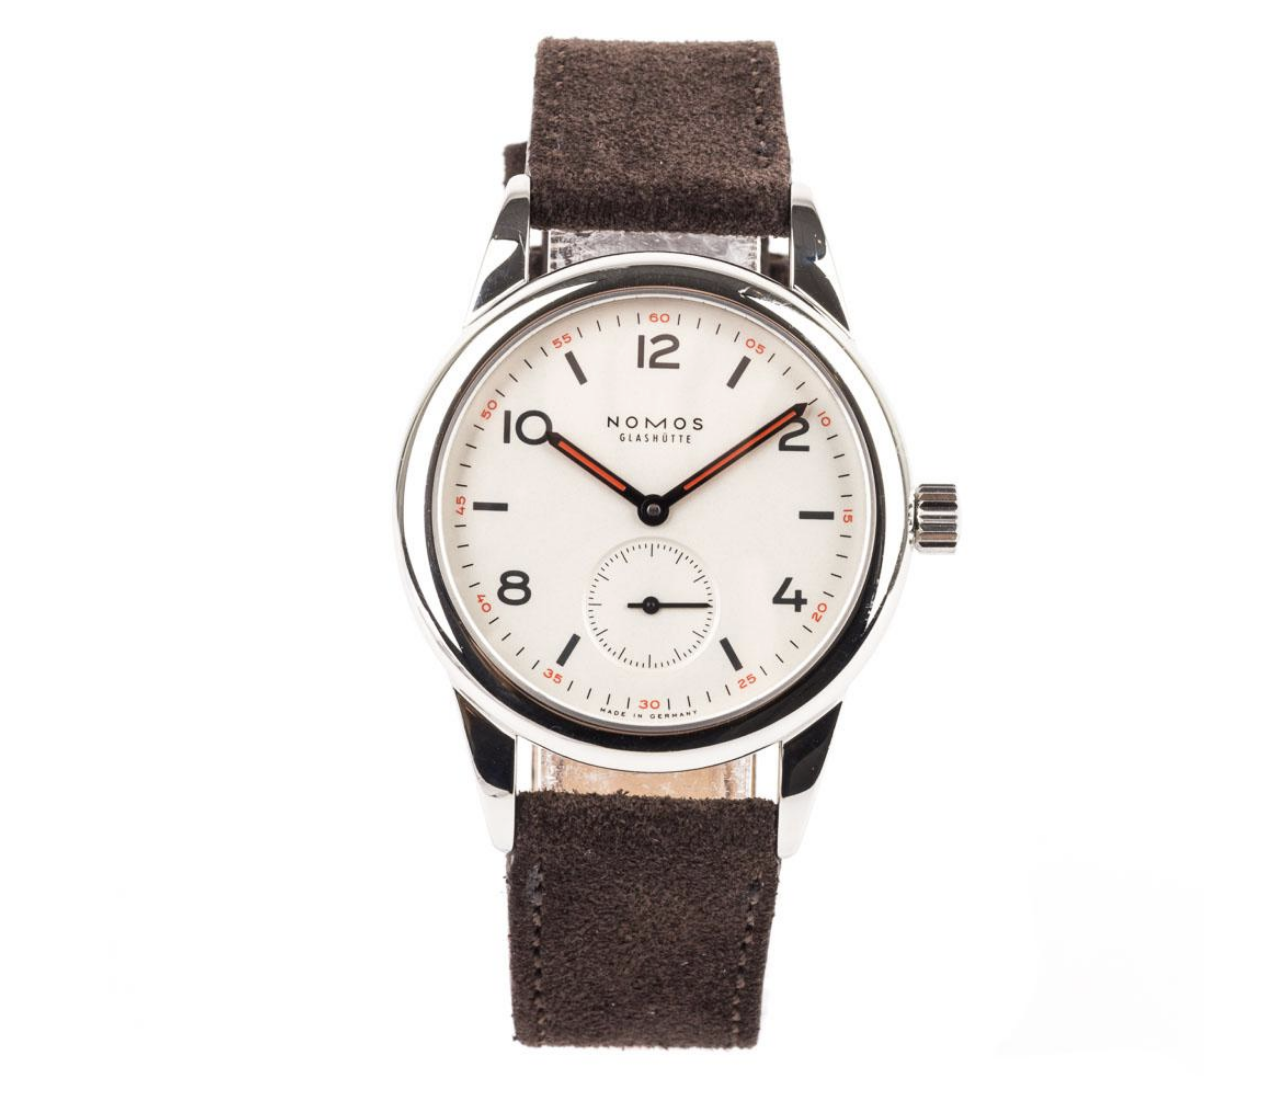 NOMOS GLASHUTTE CLUB TIMEPIECE - STORE 5aCrafted in stainless steel, this pre-owned Nomas timepiece is designed with a silver plated dial in a 36mm case.The brown, alleriegoshutzt strap is perfect for those that prefer the lightweight comfortable fit.image: store5a.com